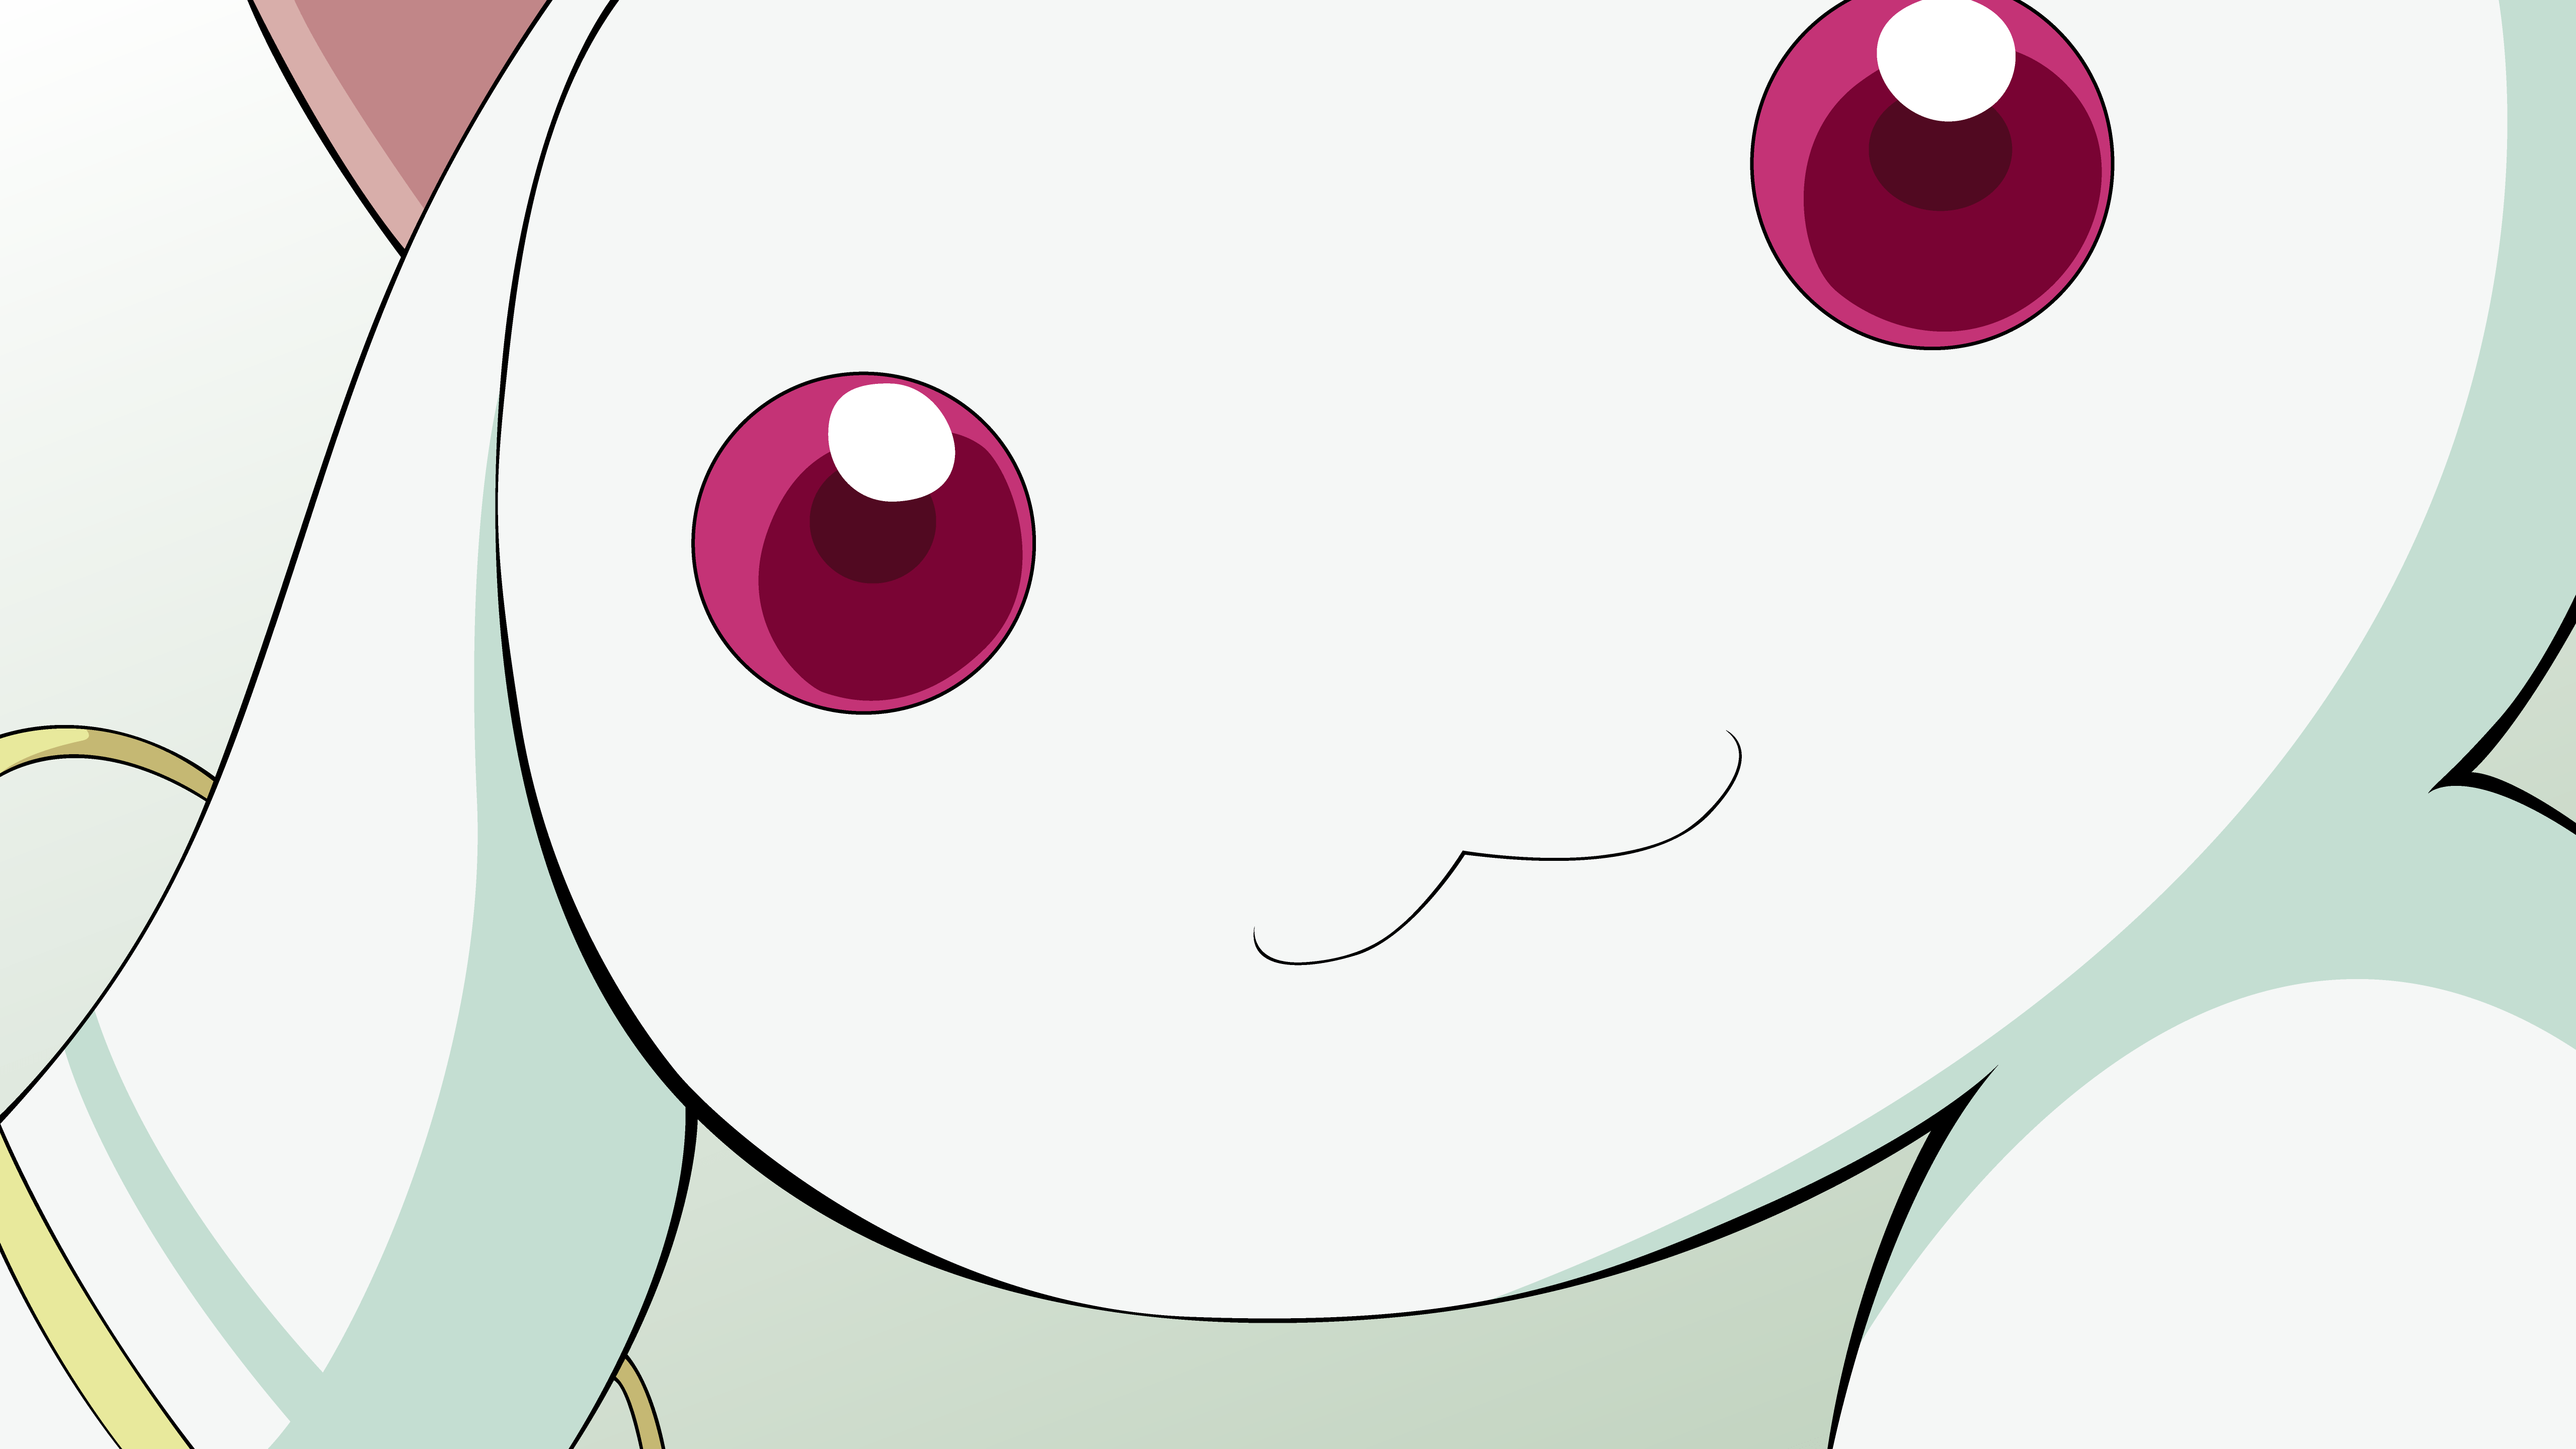 Lewd Anime Girls Wallpaper He She It Stares Into Your Soul A Post On Kyubey And